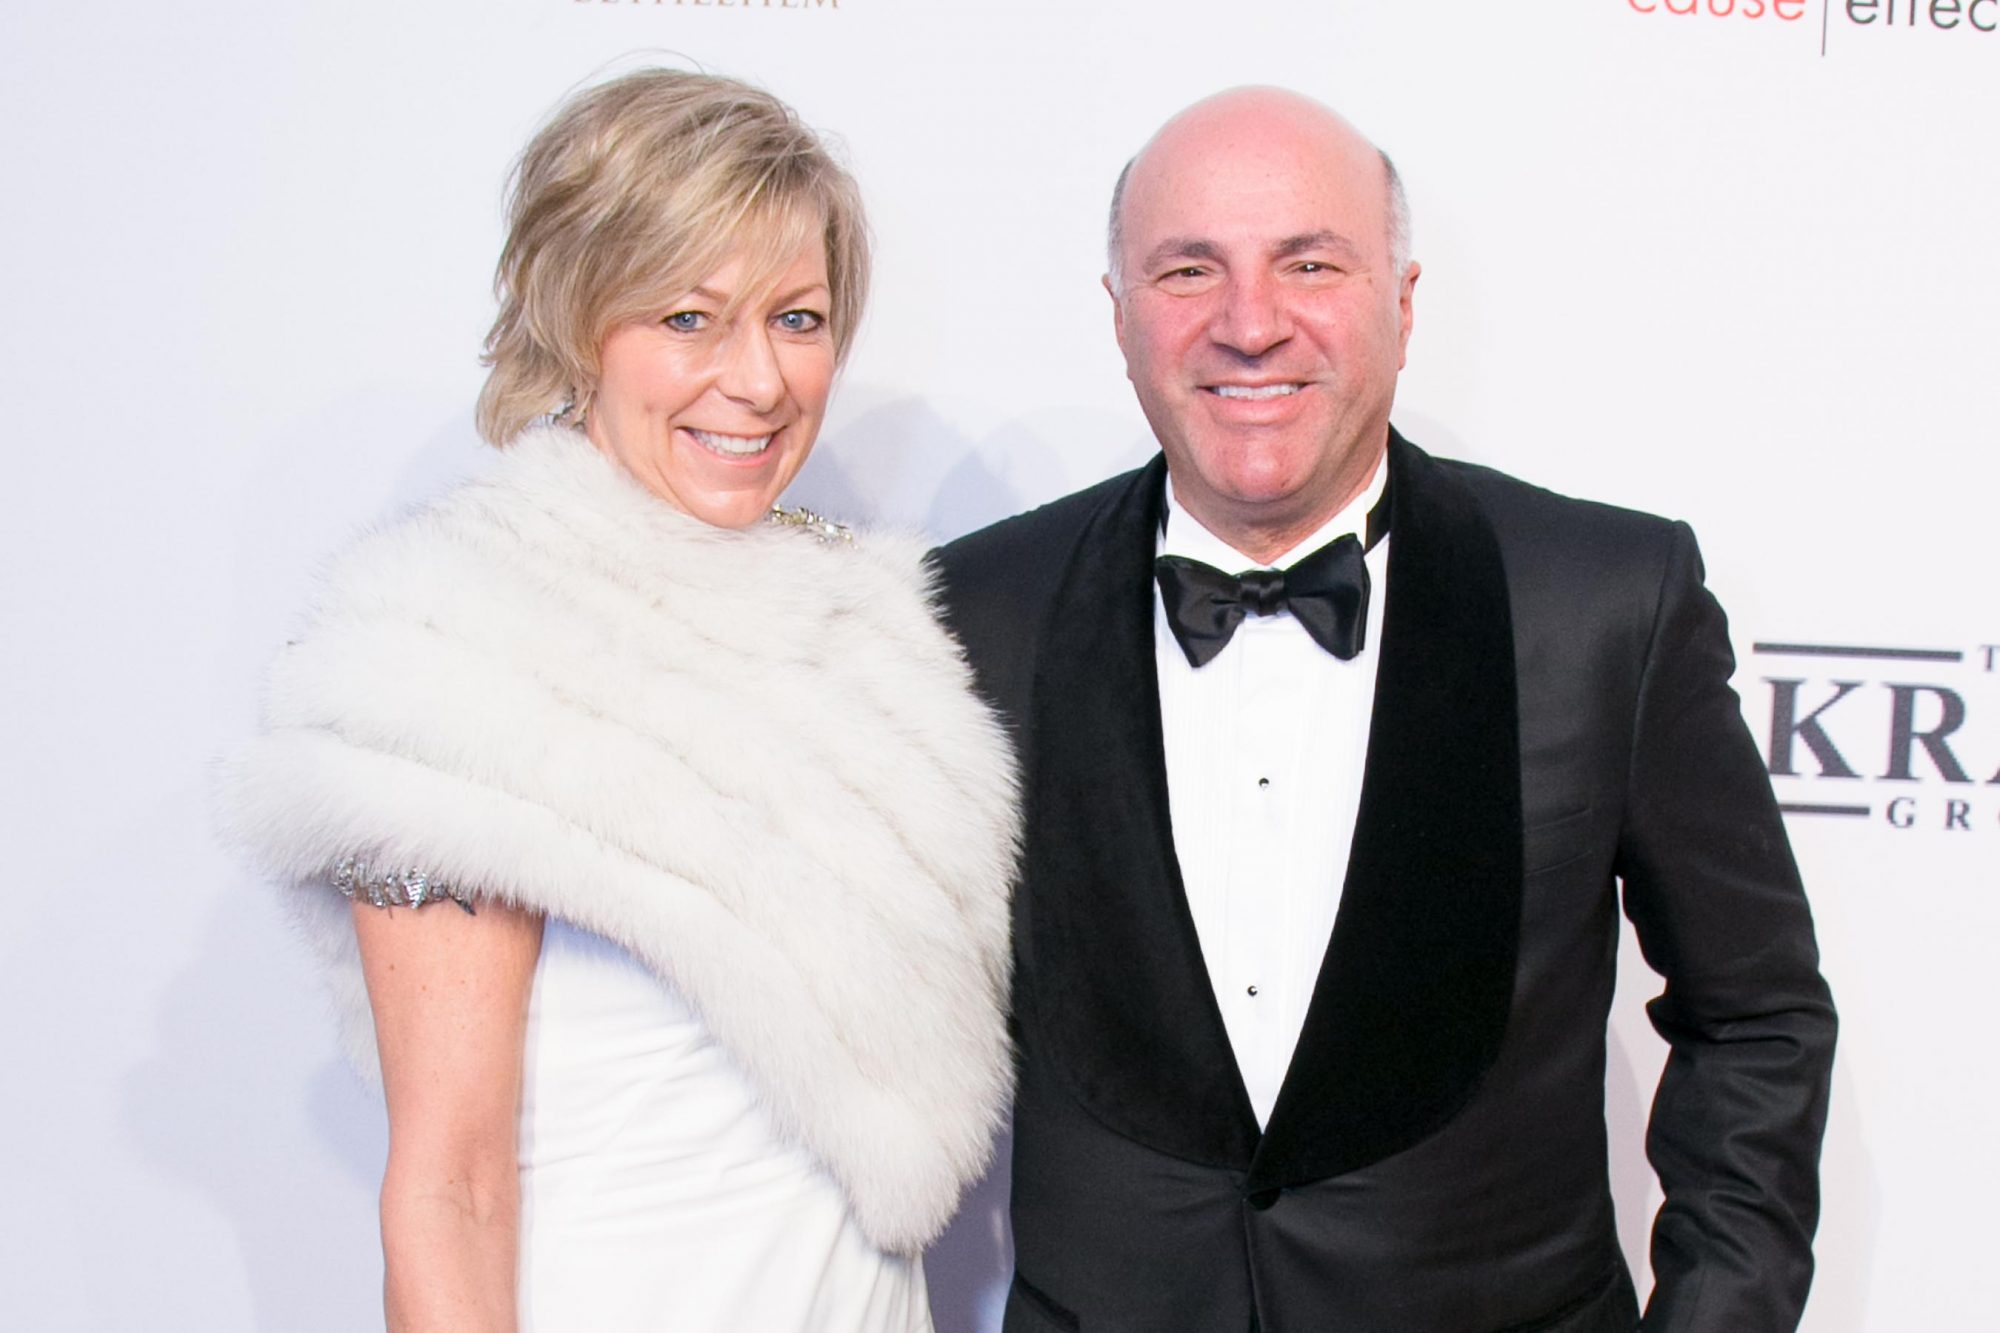 NEW YORK, NY - NOVEMBER 02: Linda O'Leary and Kevin O'Leary attend AIDS Foundation 15th Annual New York Benefit Gala at Cipriani, Wall Street on November 2, 2016 in New York City. (Photo by Victor Hugo/Patrick McMullan via Getty Images)